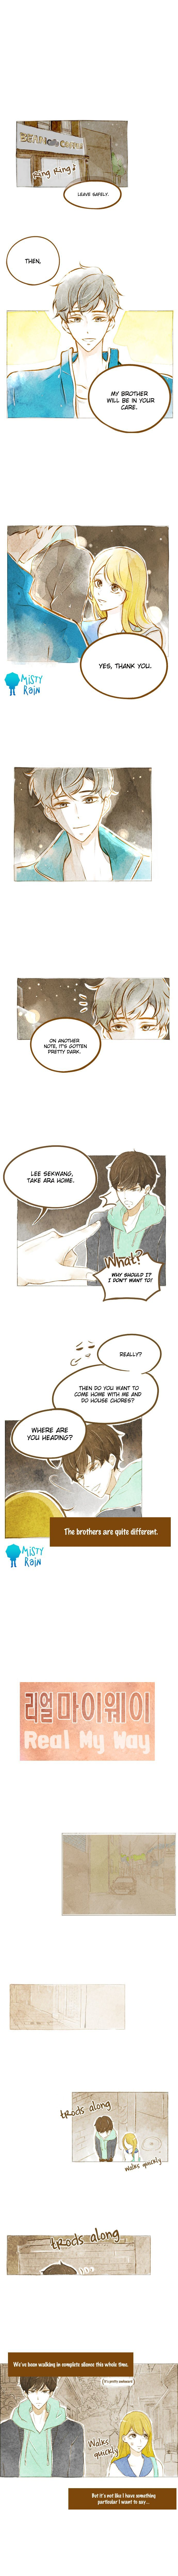 Real My Way 5 Page 1